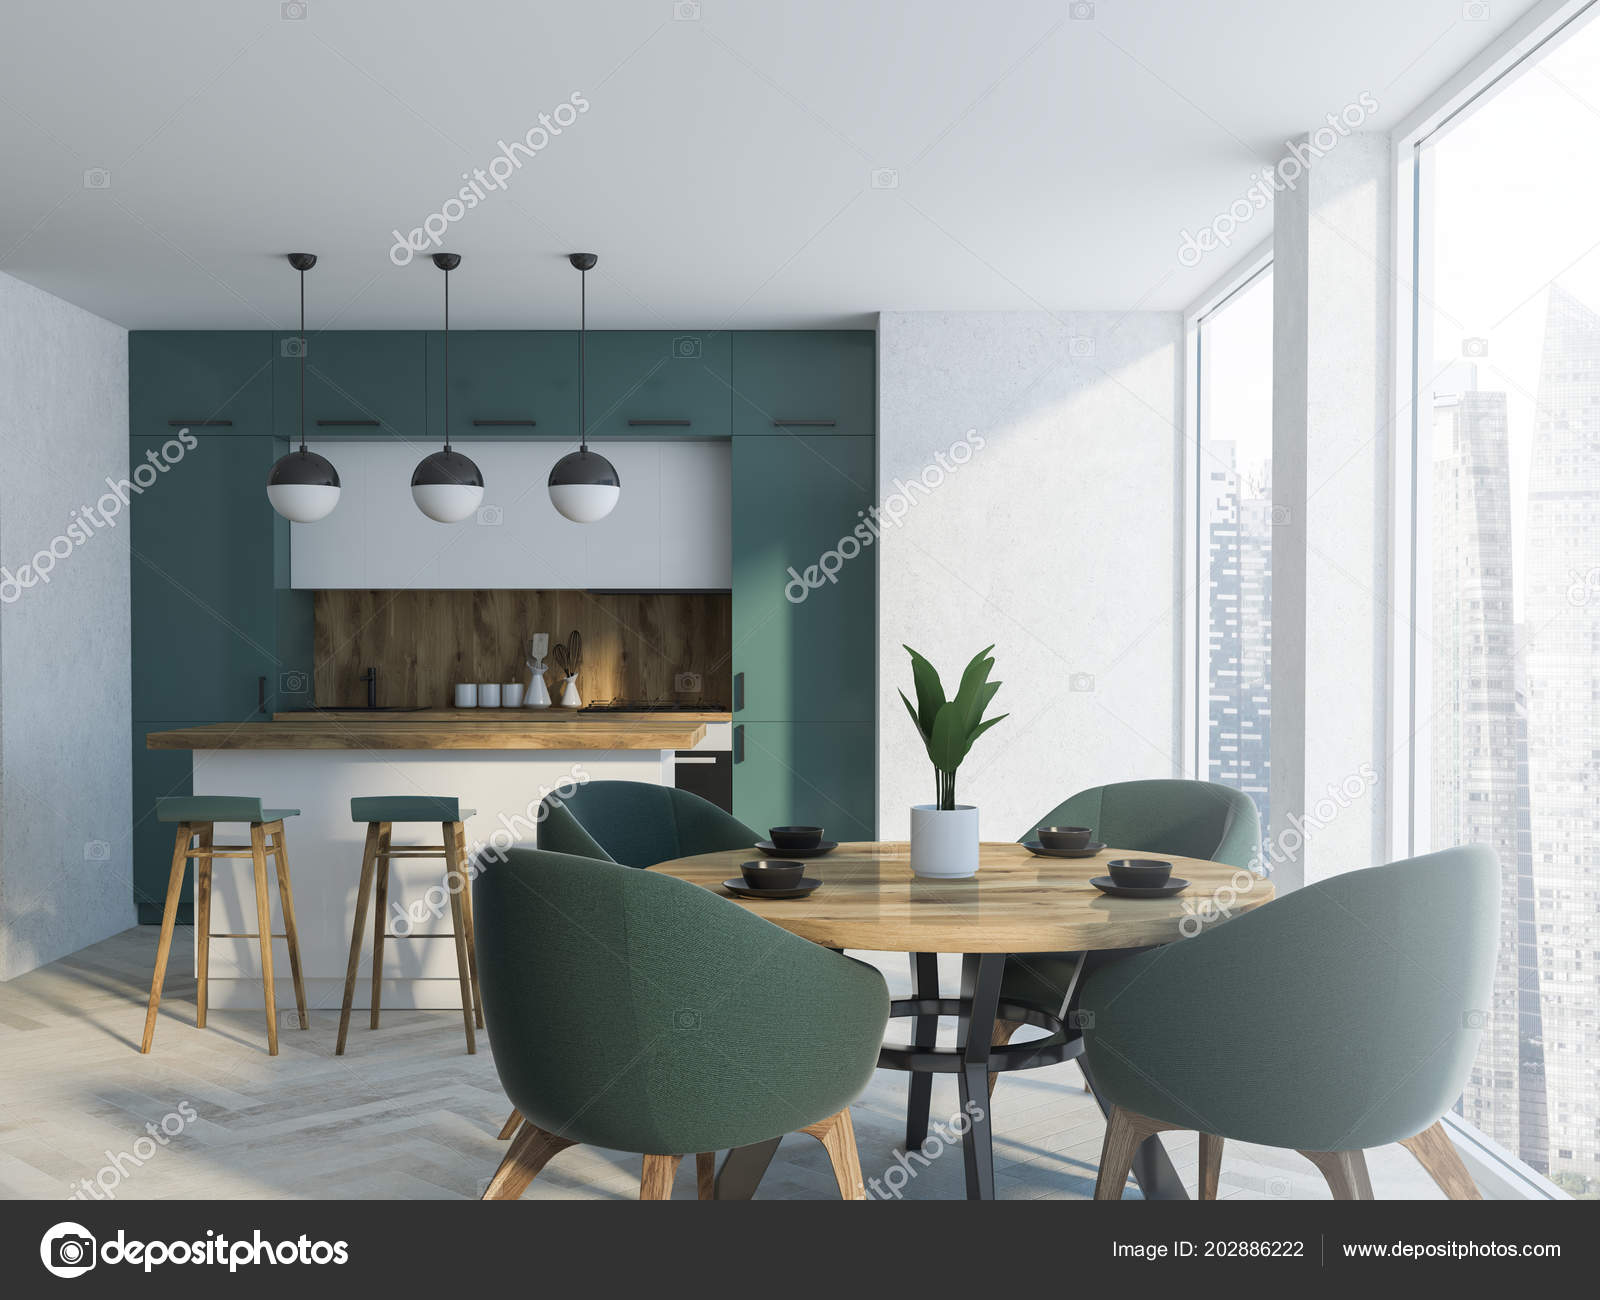 White Green Dining Room Interior Concrete Floor Wooden Table Chairs Stock Photo